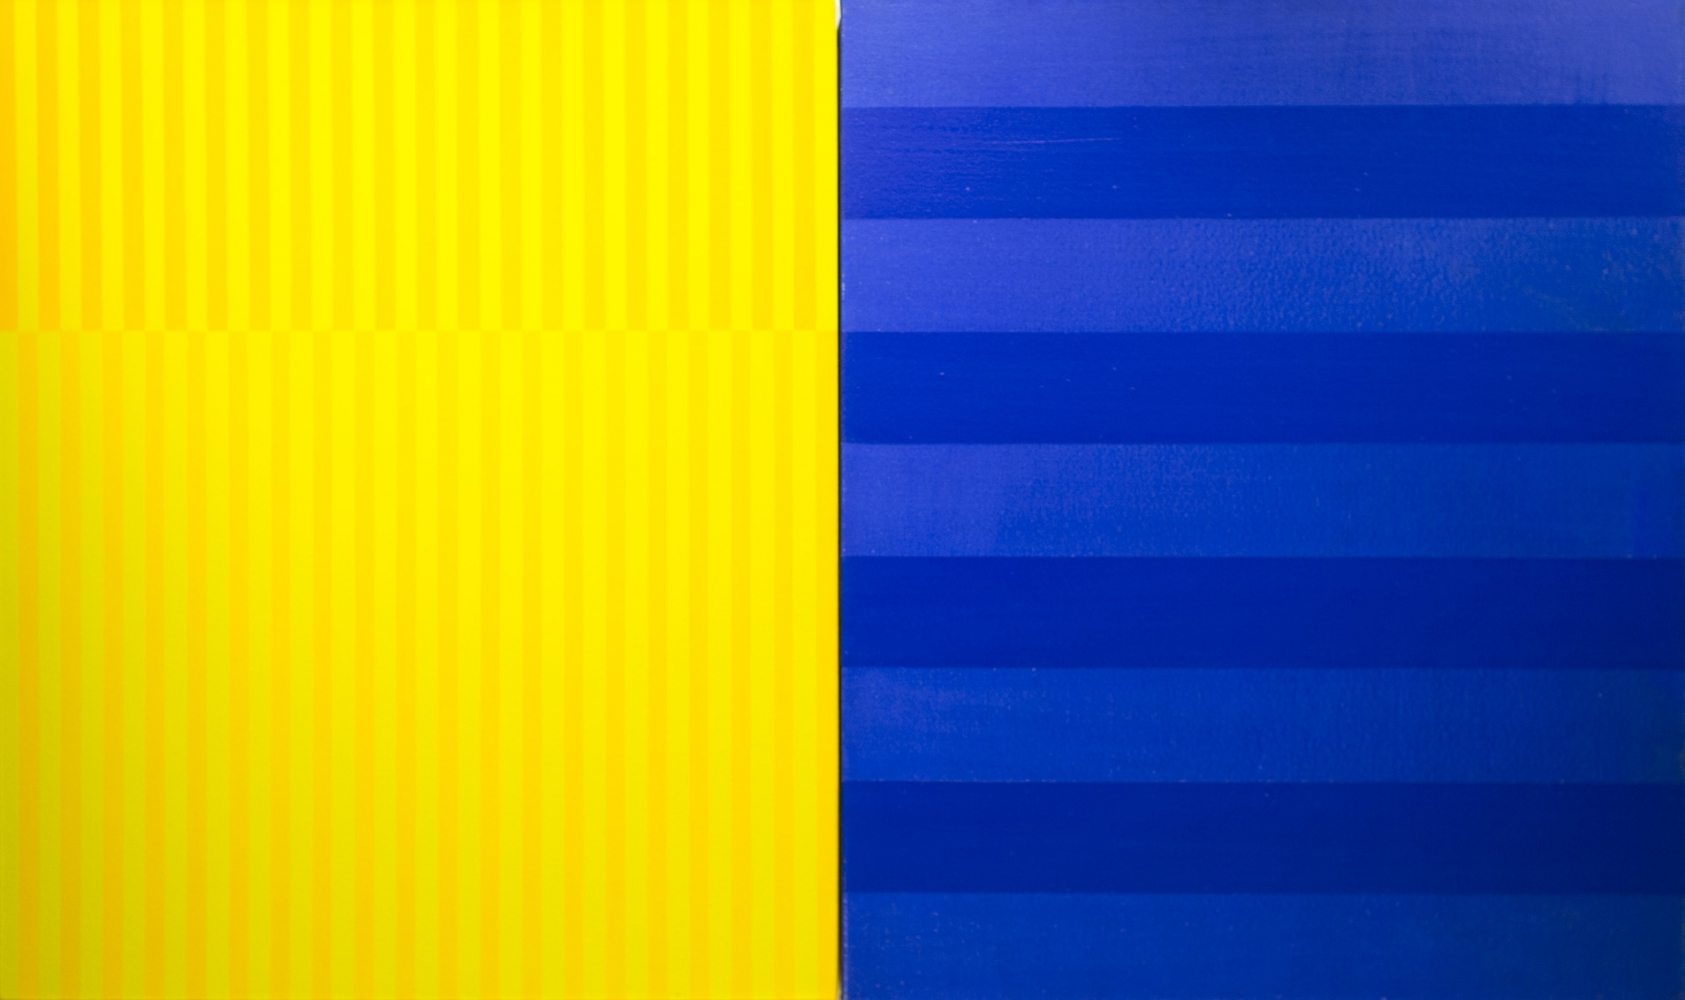 """YELLOW BLUE, 2003 Acrylic on canvas, 32 x 52"""" Private Collection"""